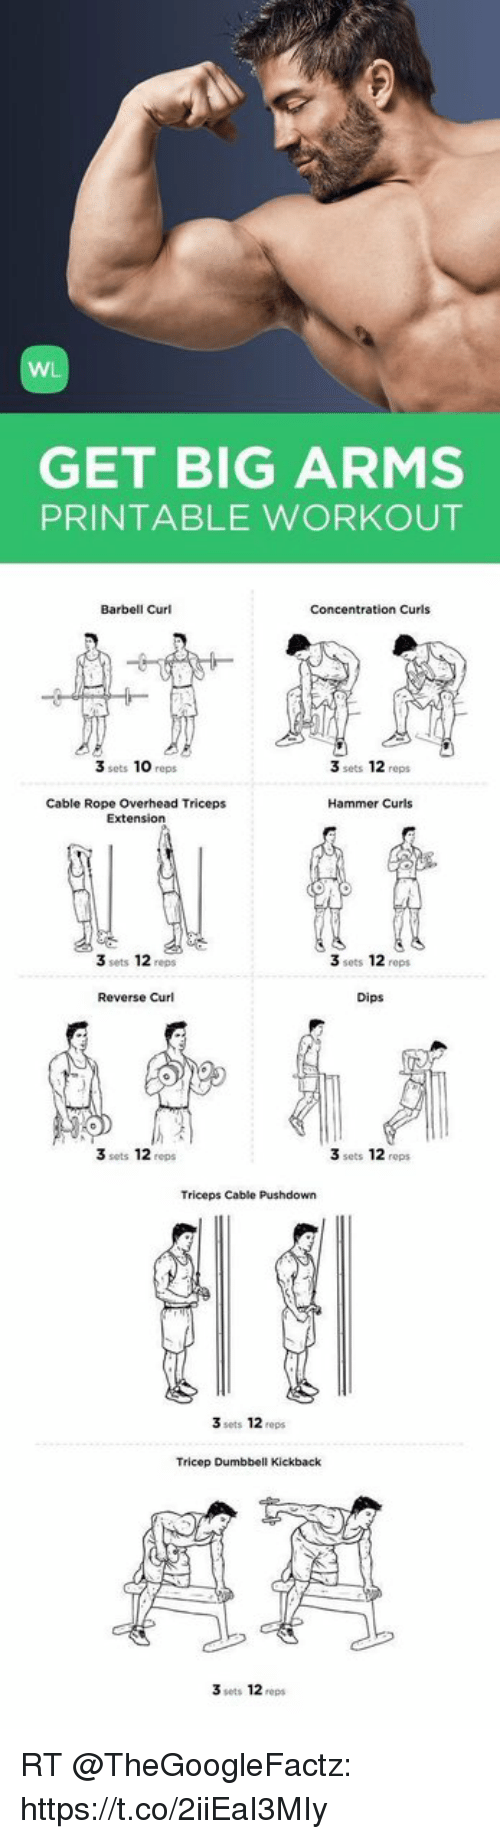 photograph about Printable Arm Workouts named WL Attain Massive Hands PRINTABLE Exercise Barbell Curl Target